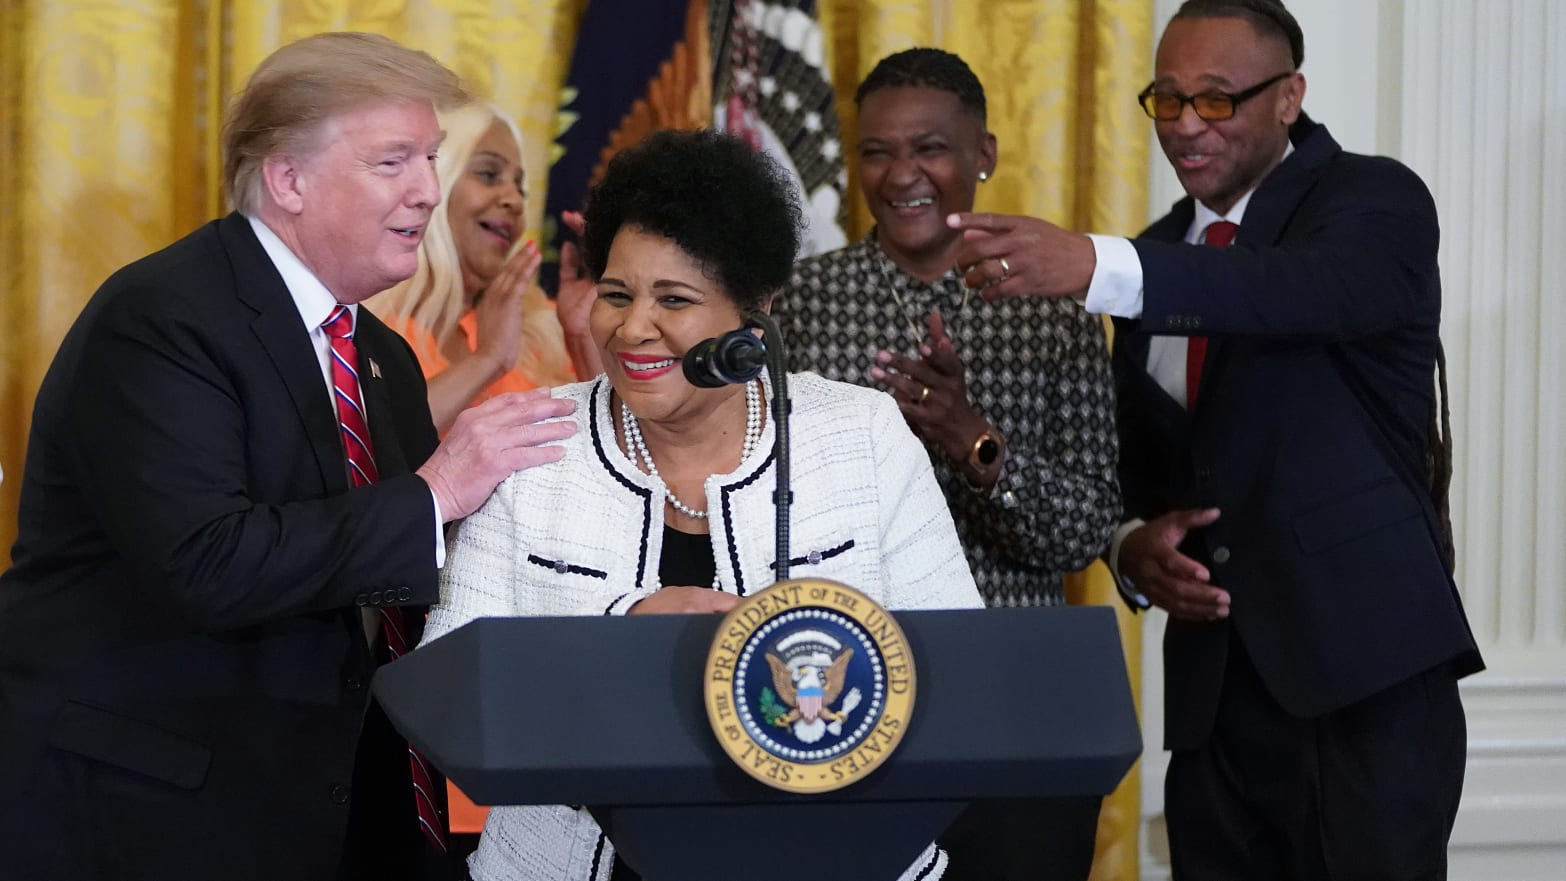 Trump courts black voters, but opposition remains deep